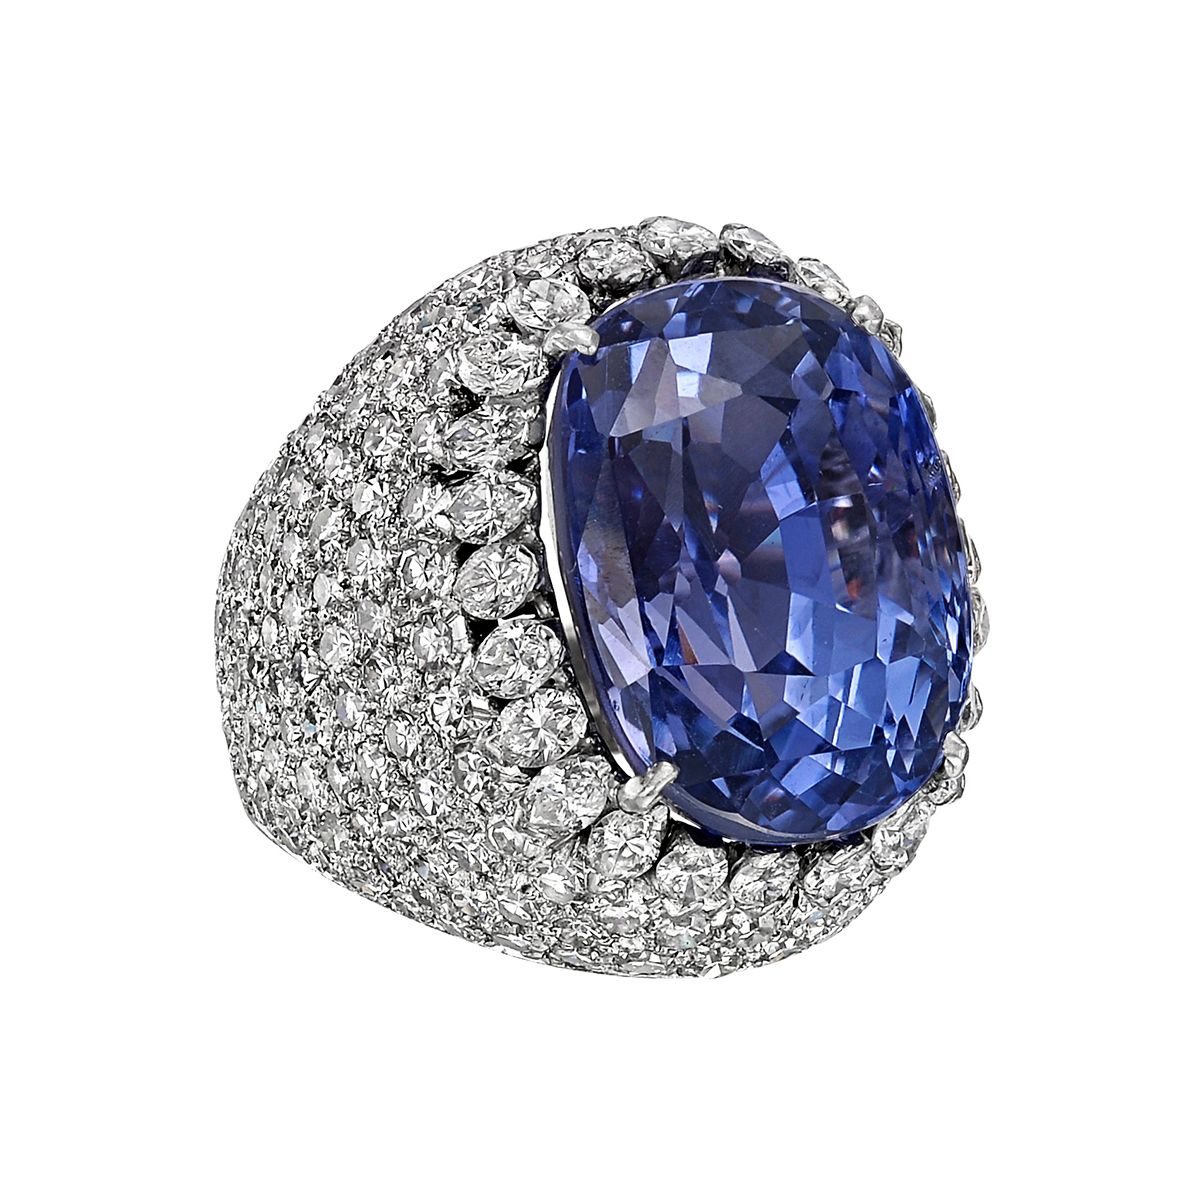 20.26 Carat Ceylon sapphire and diamond cocktail ring, centering a natural oval-shaped blue/violet color-change sapphire weighing 20.26 carats, the sapphire mounted within a domed pavé-set diamond surround, in platinum. Accompanied by the GIA lab certificate for the sapphire.